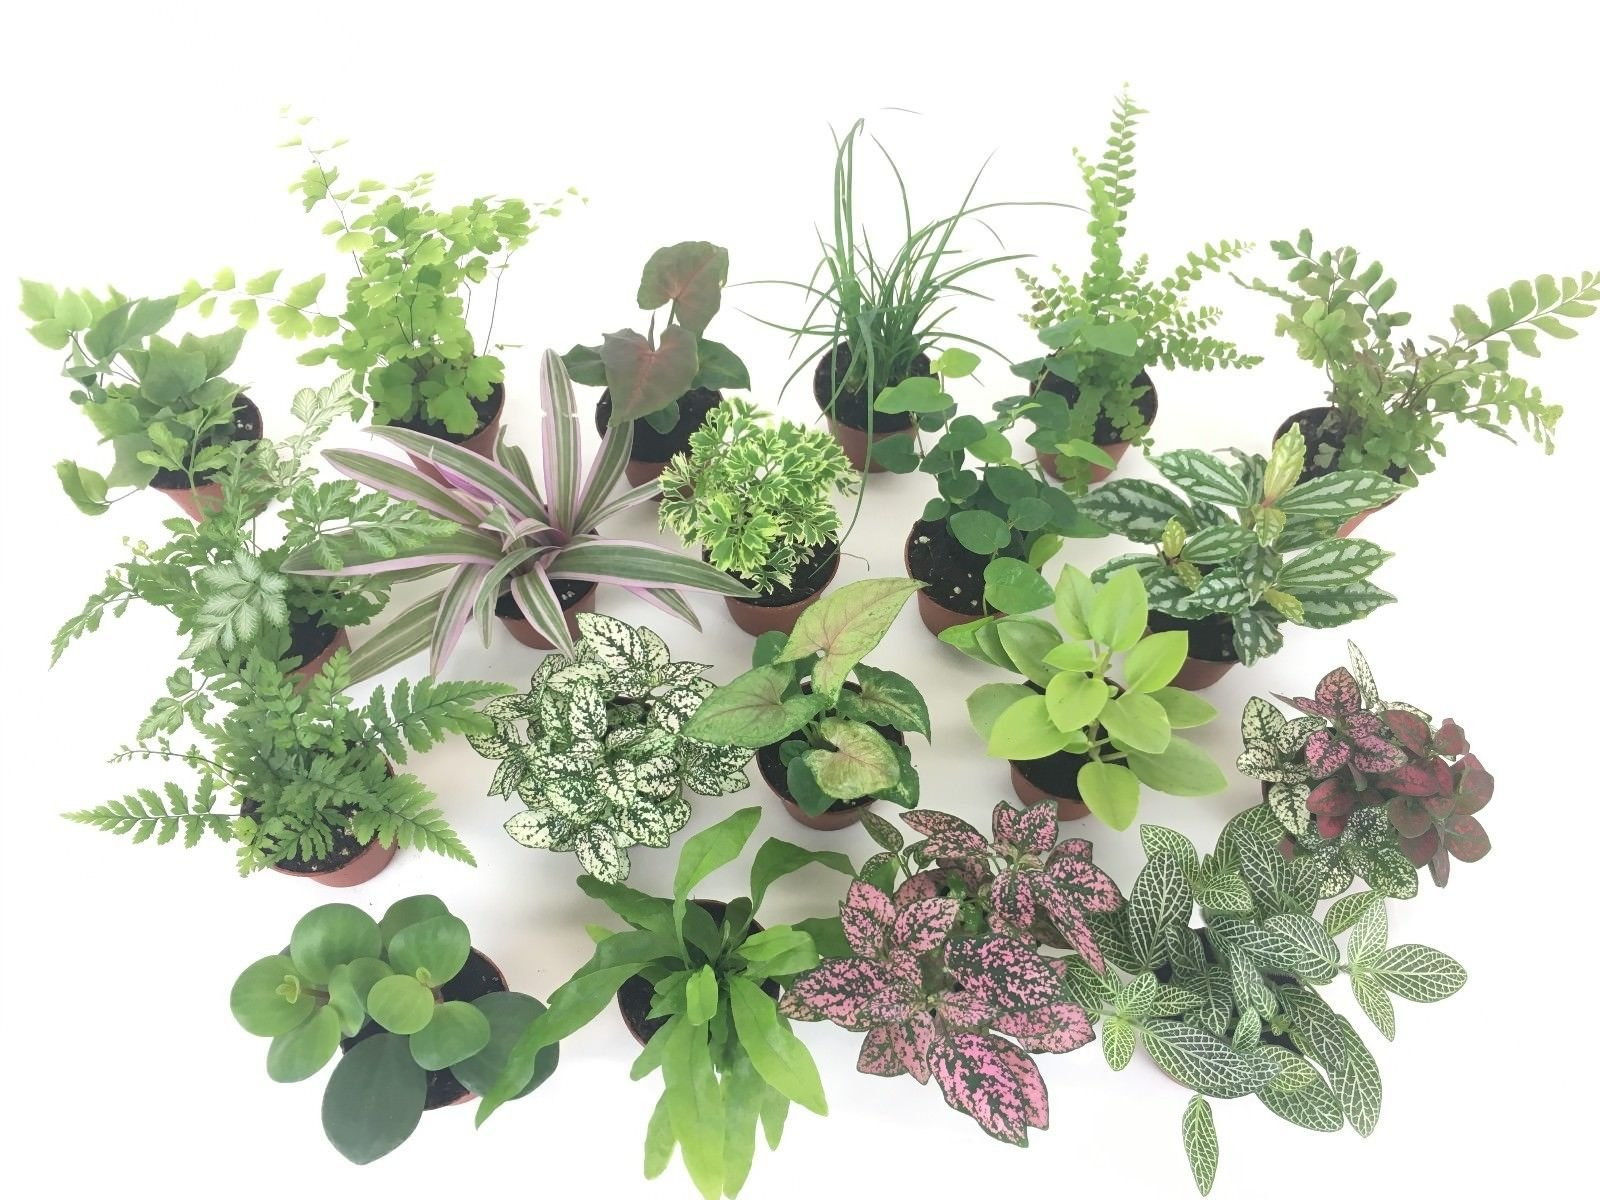 2'' Mini Fairy Garden & Terrarium Plants Assorted Varieties (Pack of 2 Plants) by Ma_Plant (Image #1)